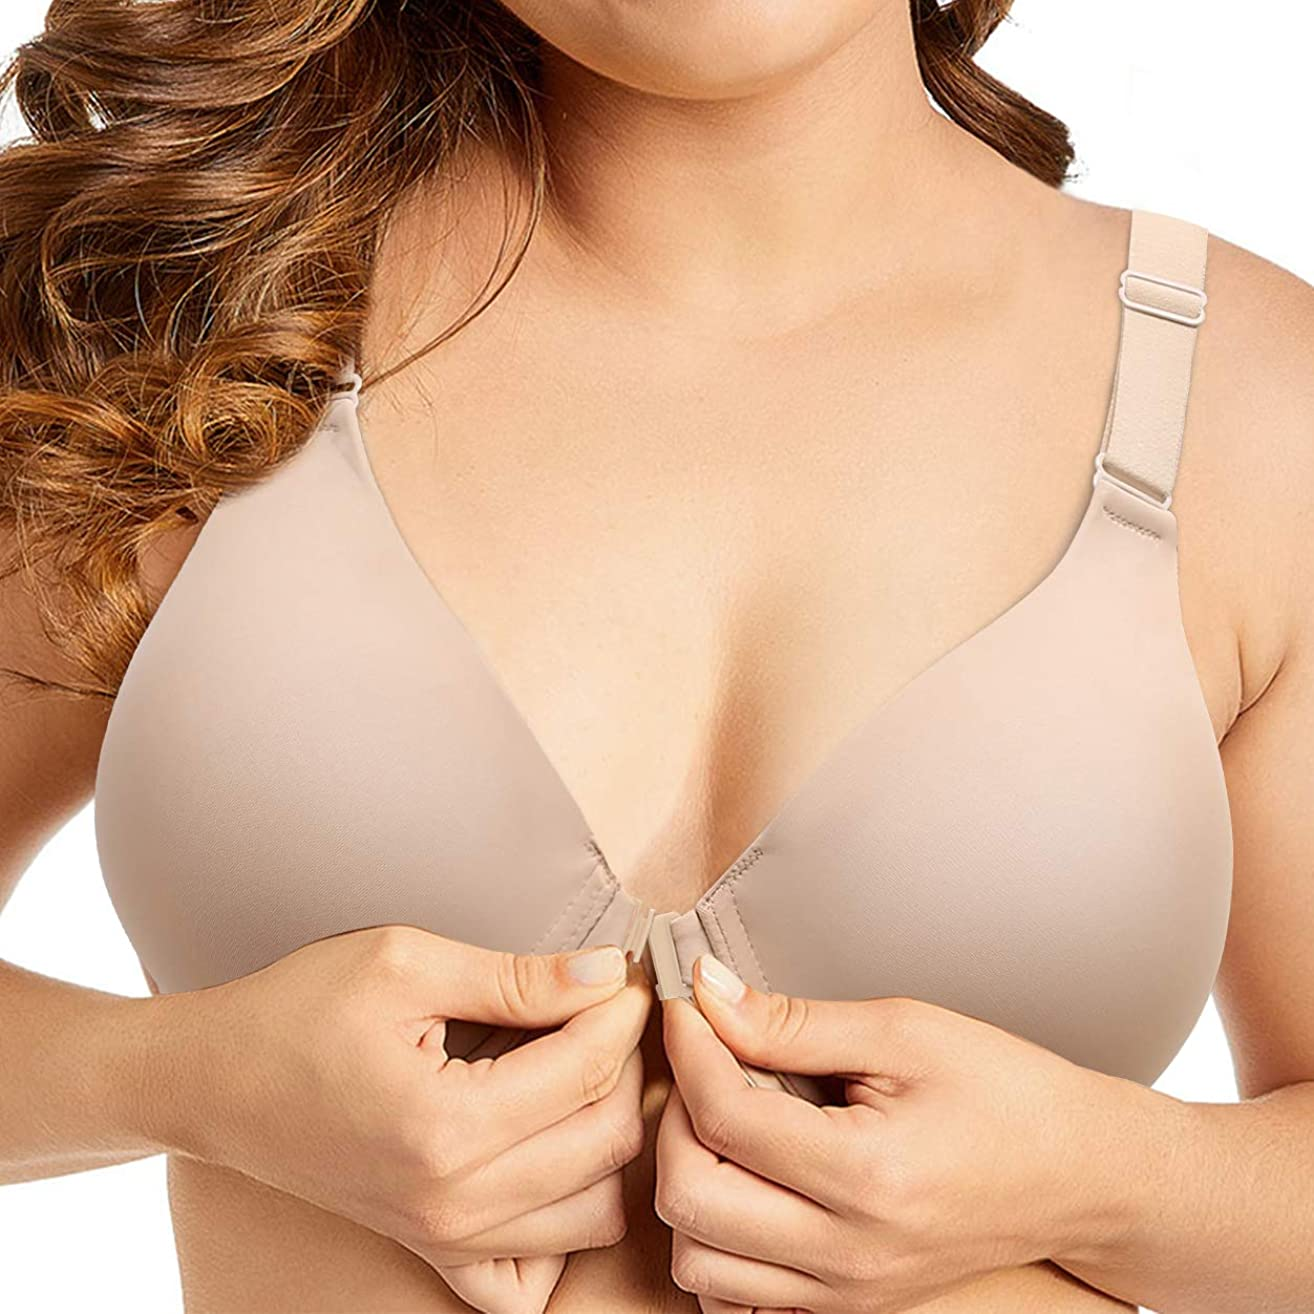 Bras for Women Front Closure Plus Size Underwire Full Coverage Support Everyday Bra for Women 38D-46DDD Cup